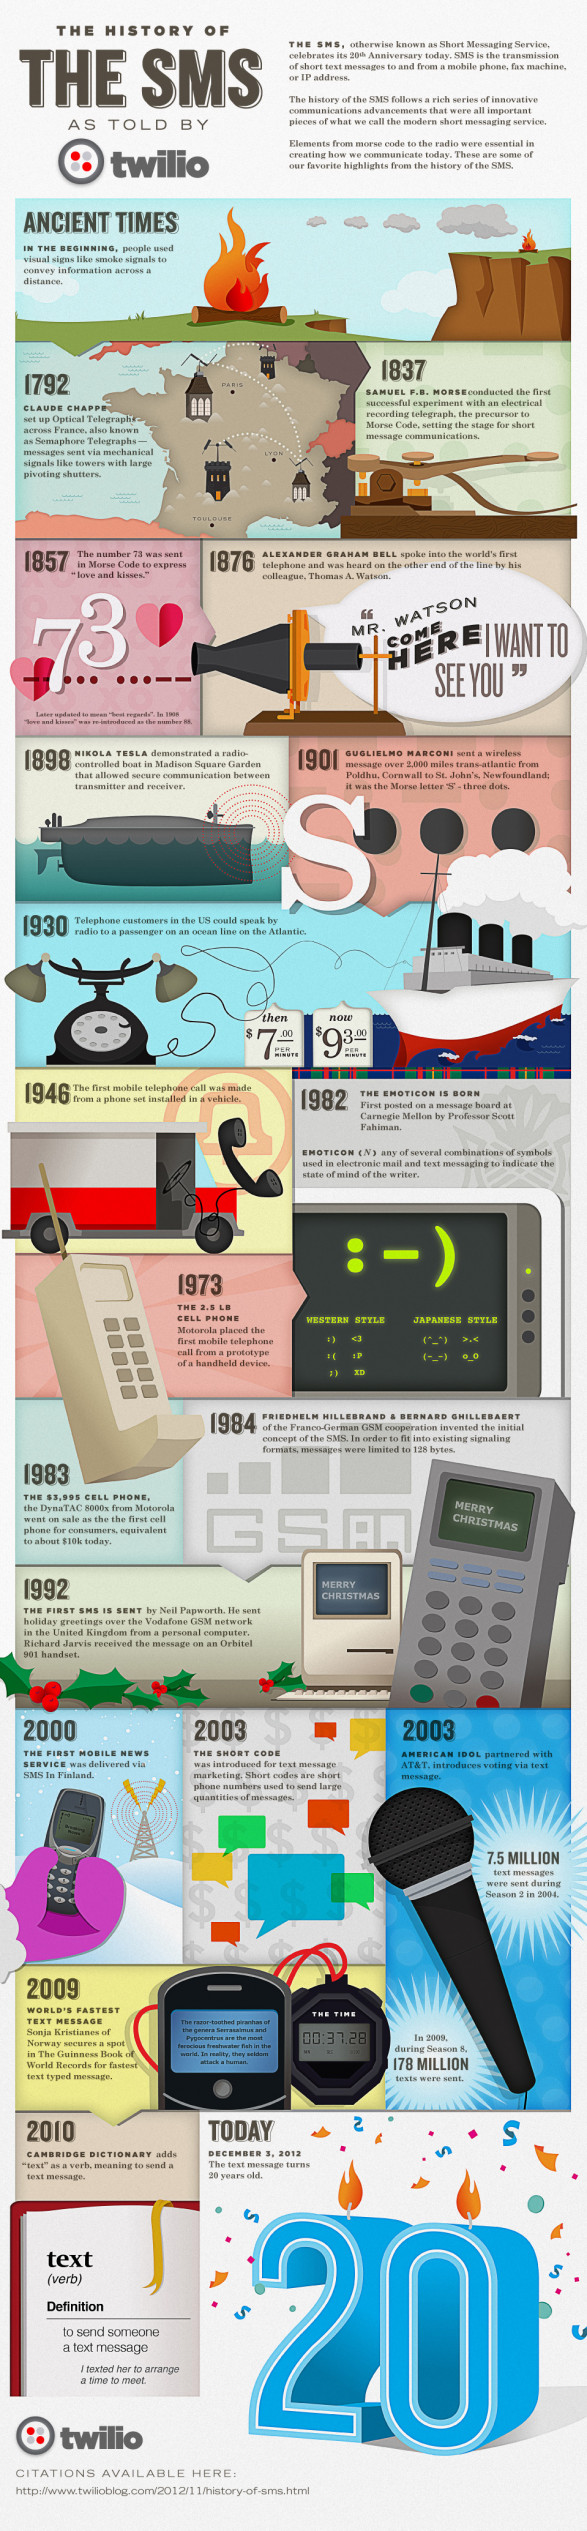 Celebrating the 20th Anniversary of the Text Message: History of the SMS